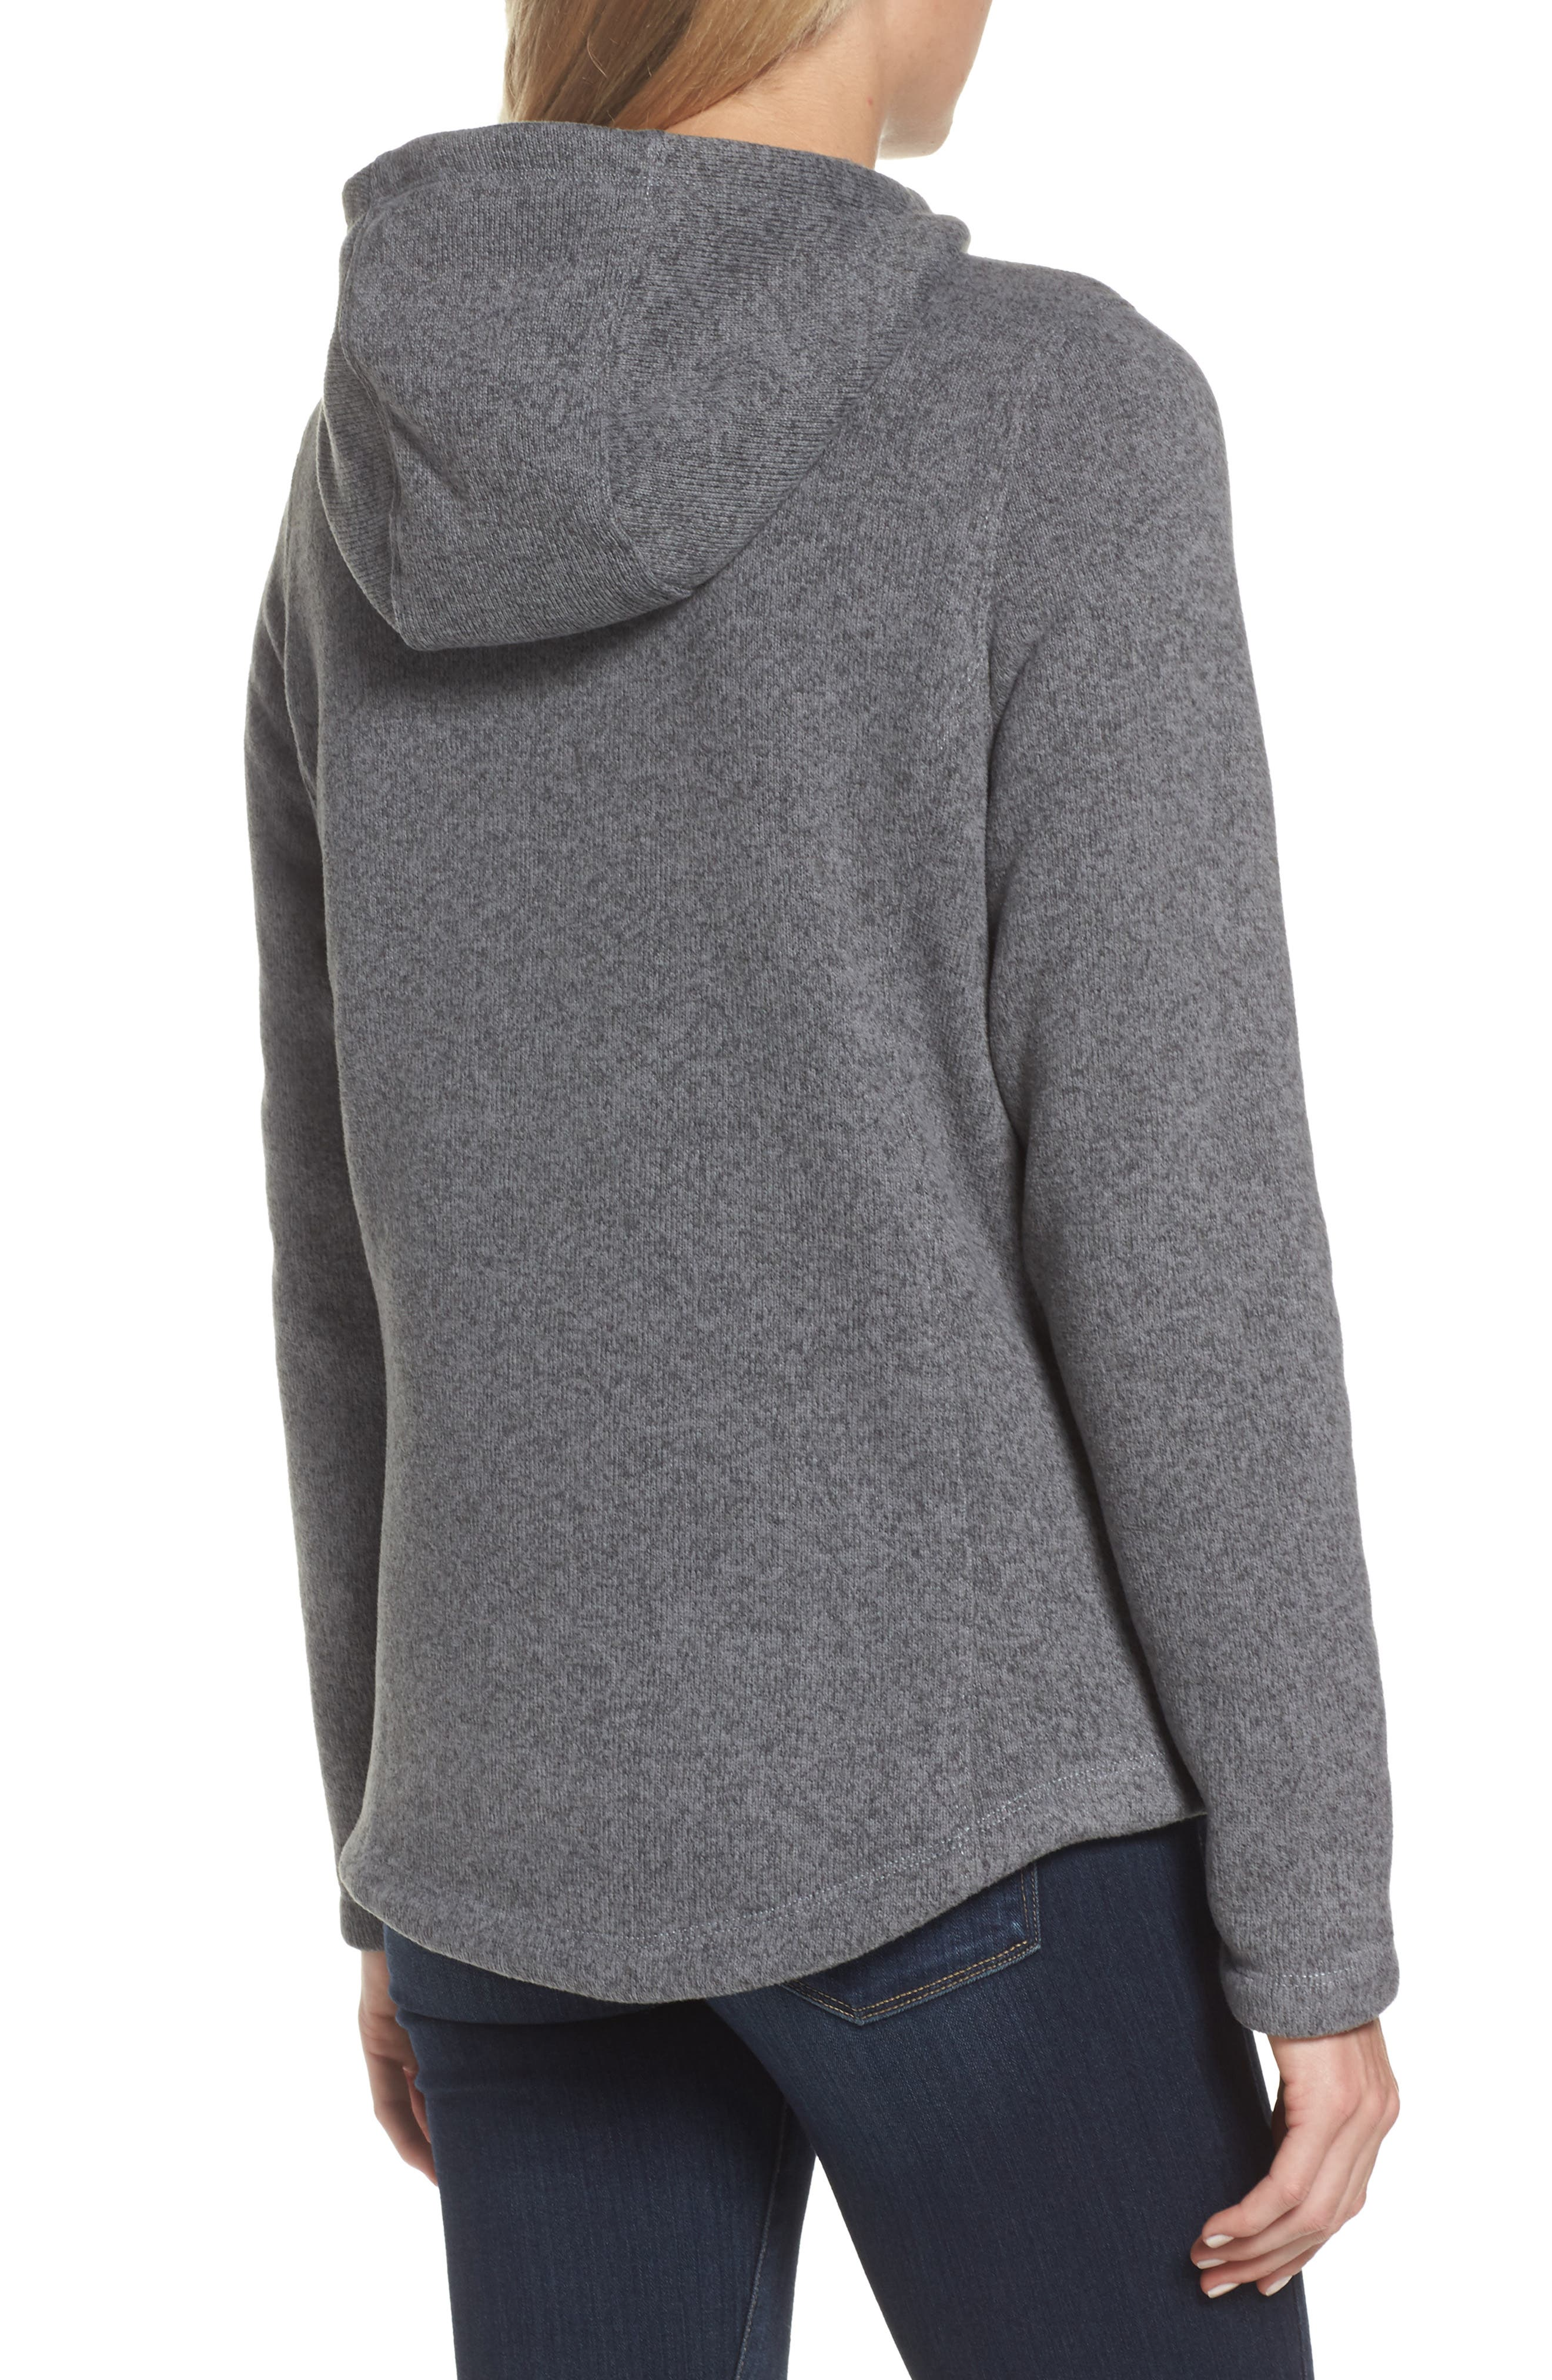 THE NORTH FACE,                             Crescent Hoodie,                             Alternate thumbnail 2, color,                             030